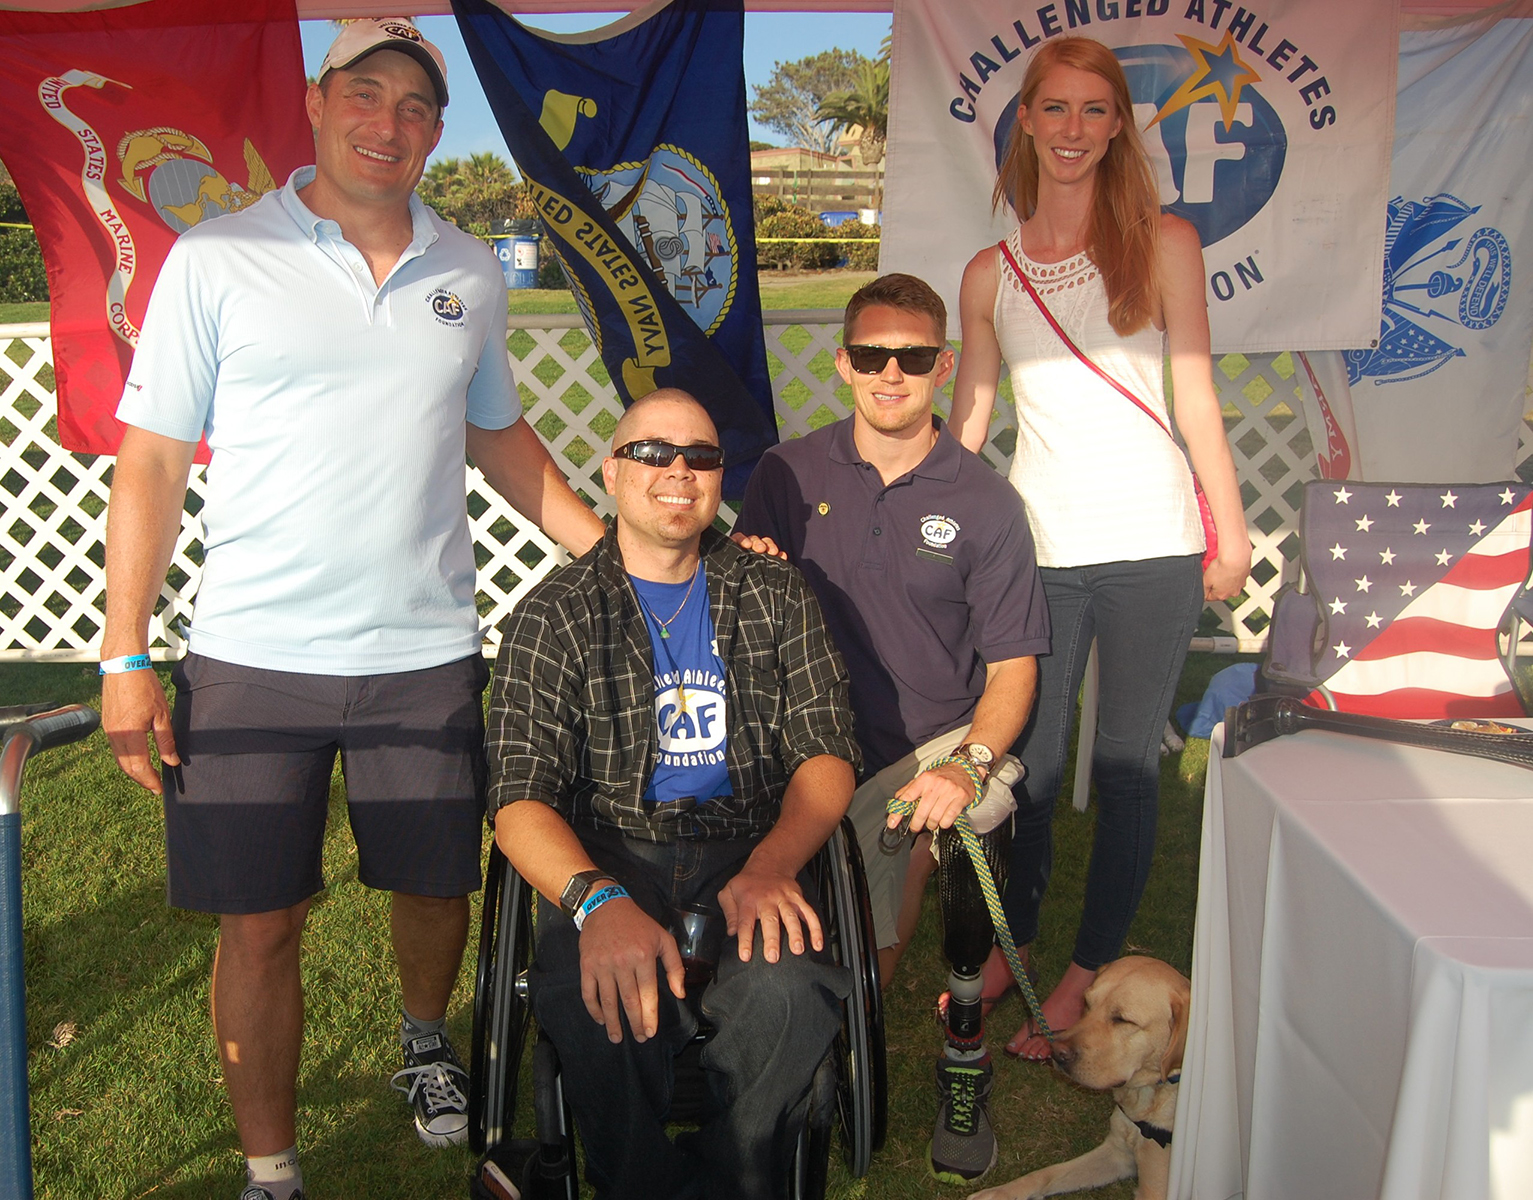 Holding down the information tent for the Challenged Athletes Foundation, a beneficiary of this year's event, are Solana Beach resident Nico Marcolongo, Mike Johnson, Mark Browne and Madeline Warr. Photo by Bianca Kaplanek